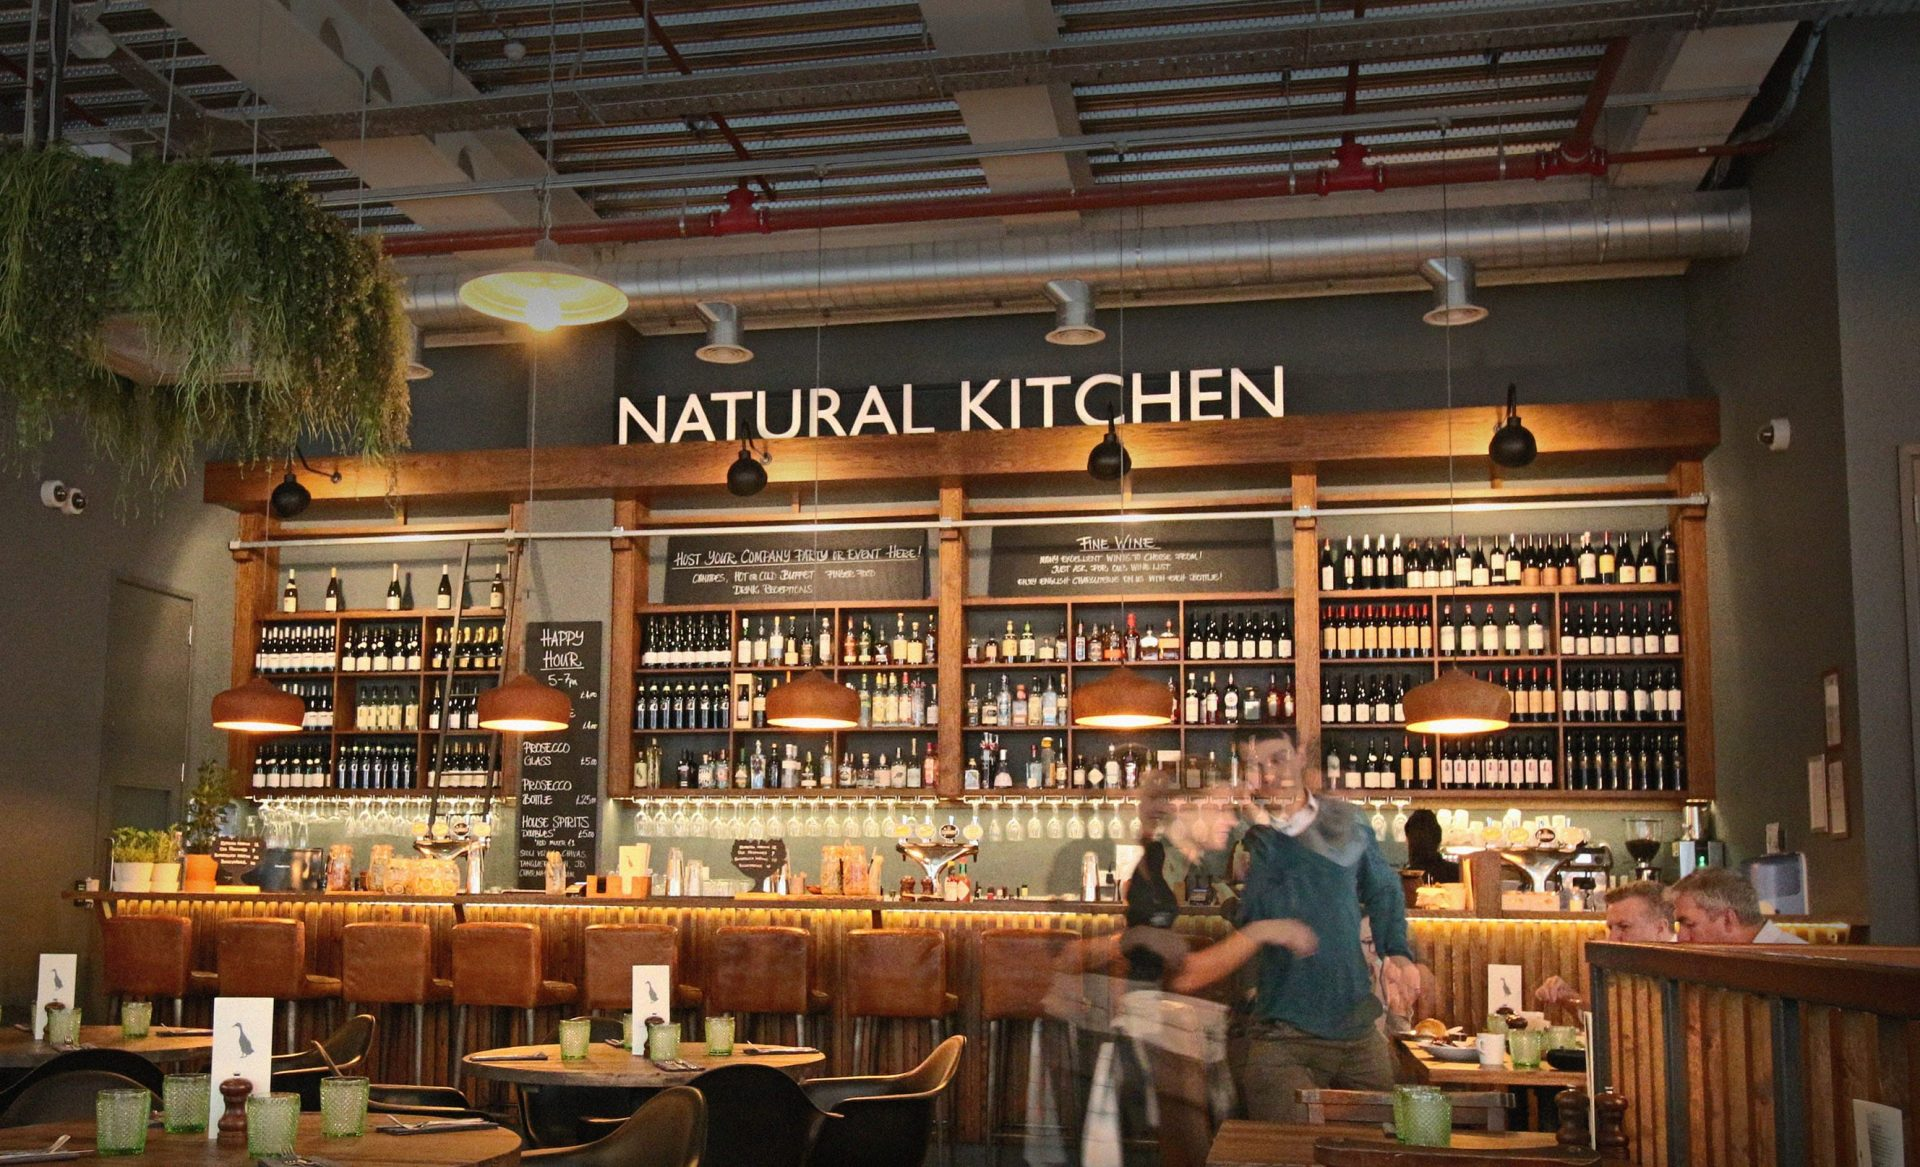 Web design for natural kitchen restaurant in london